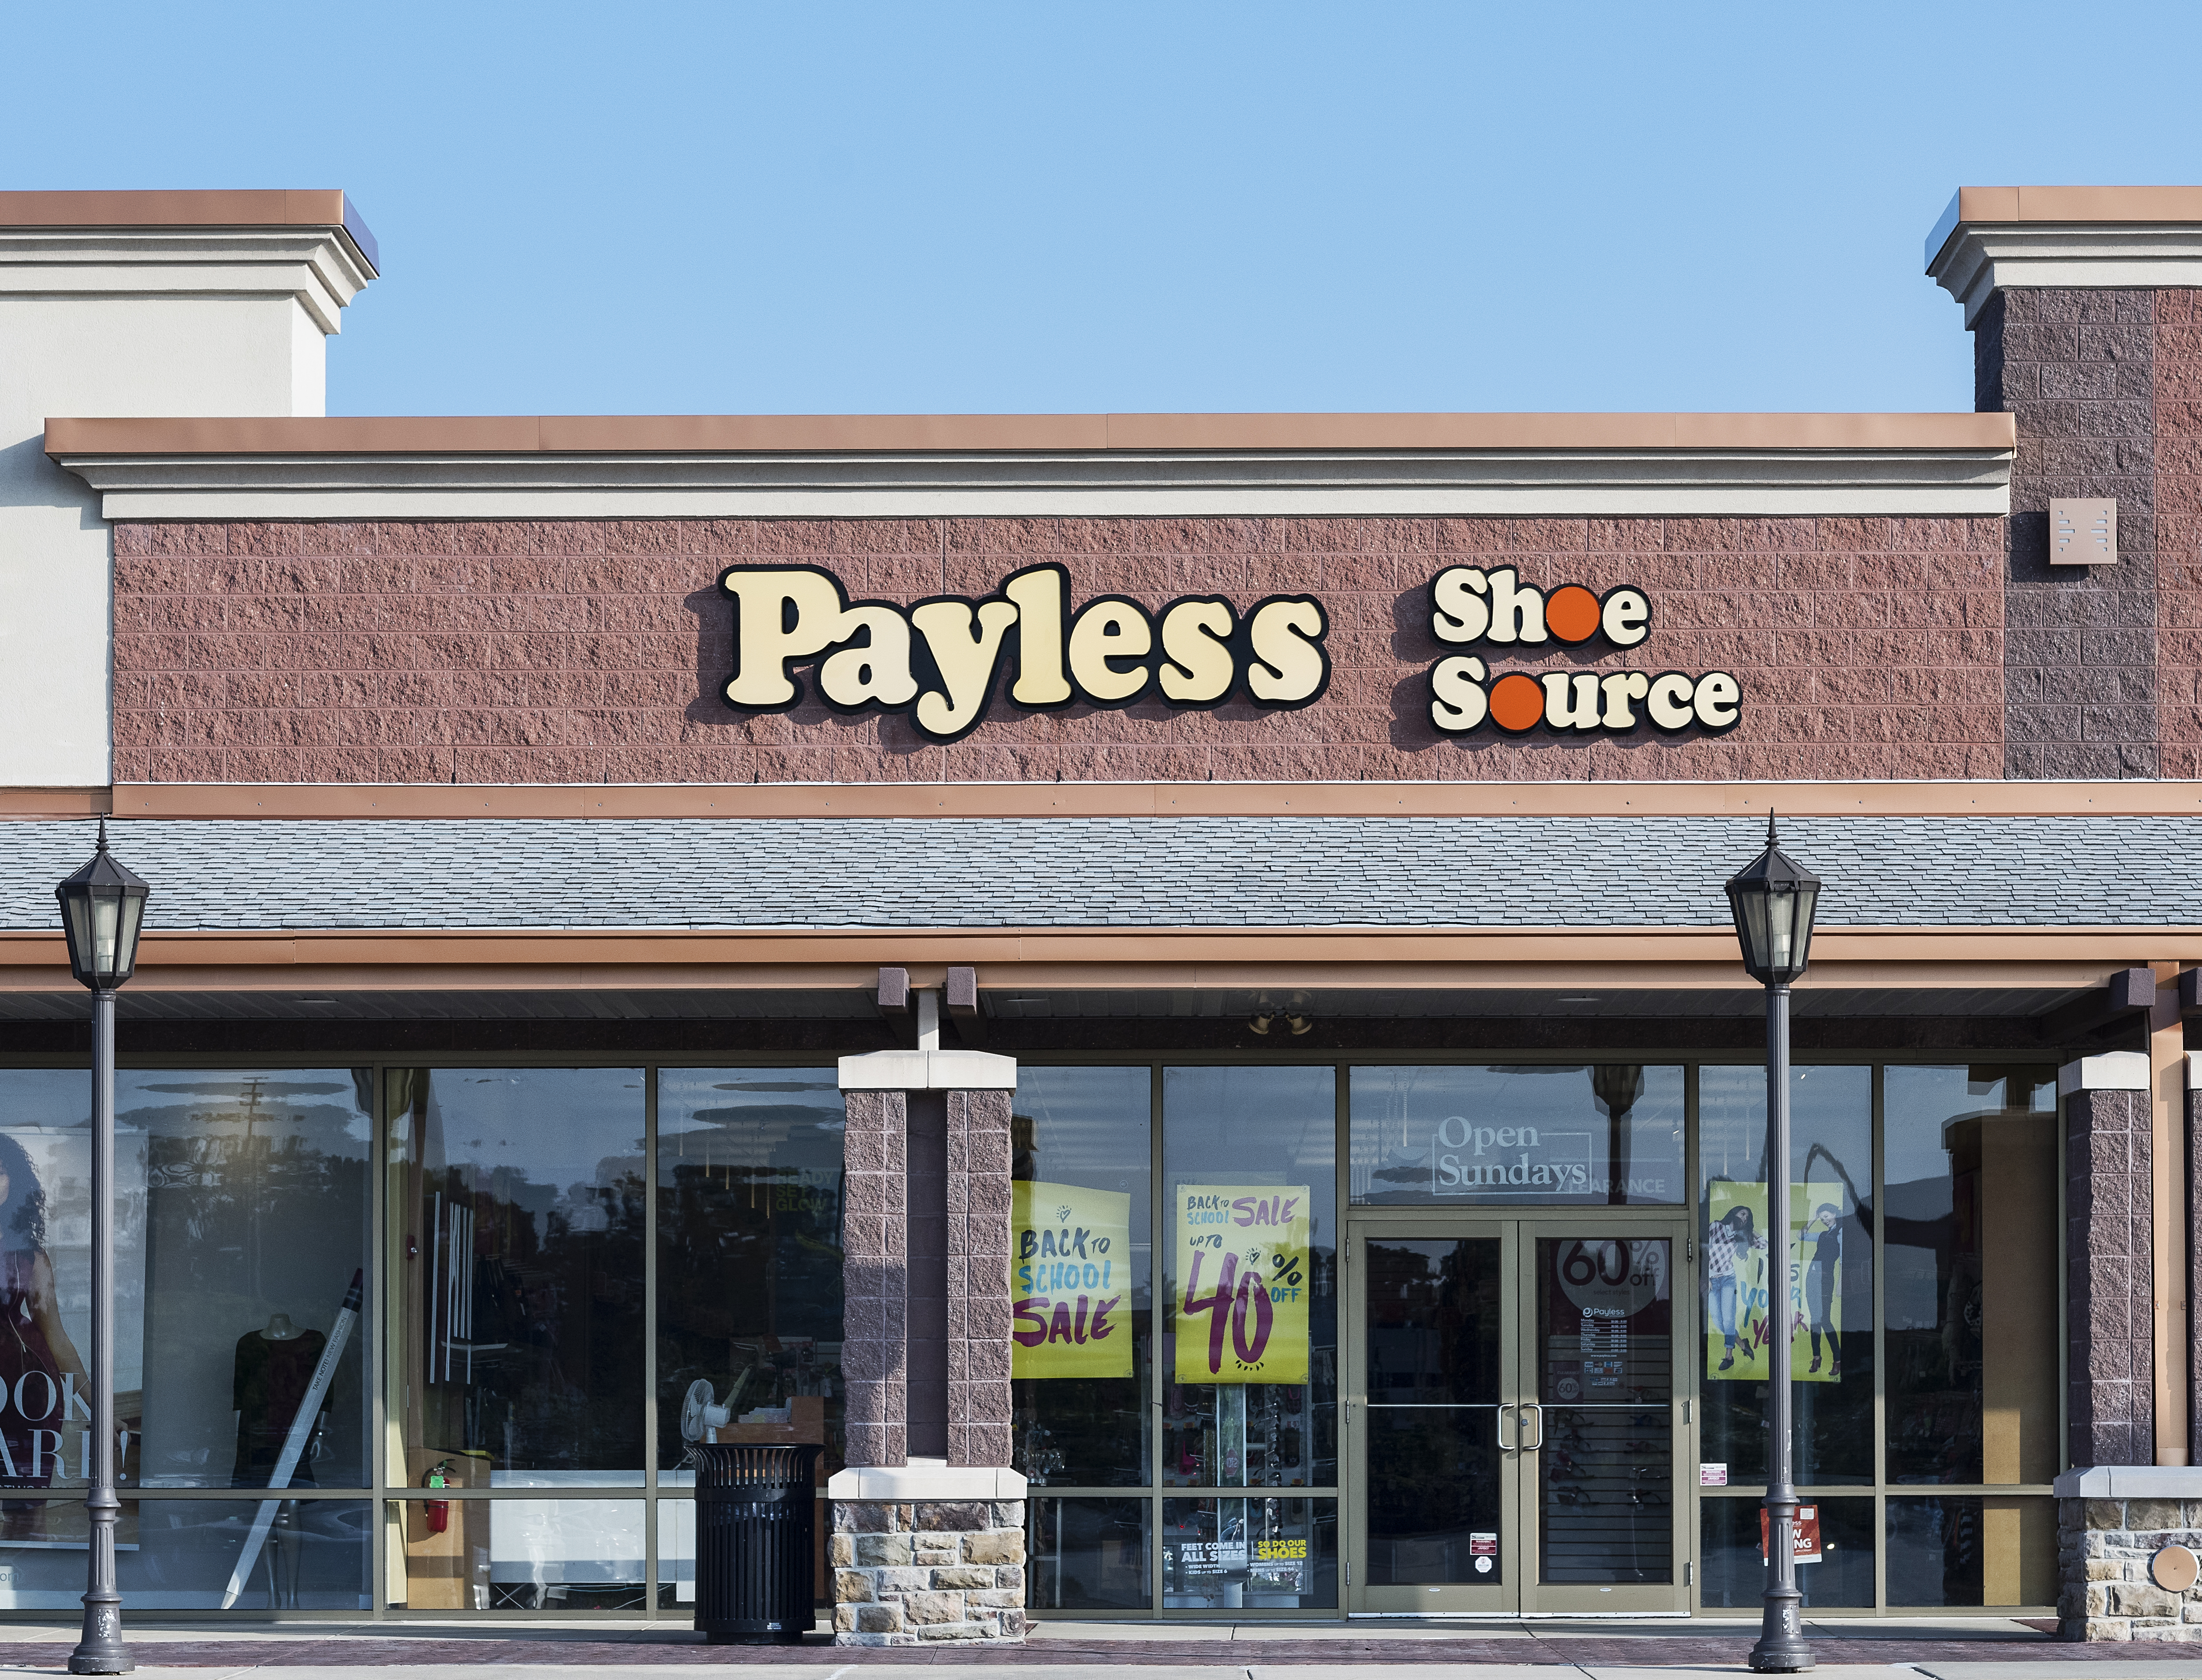 A Payless storefront